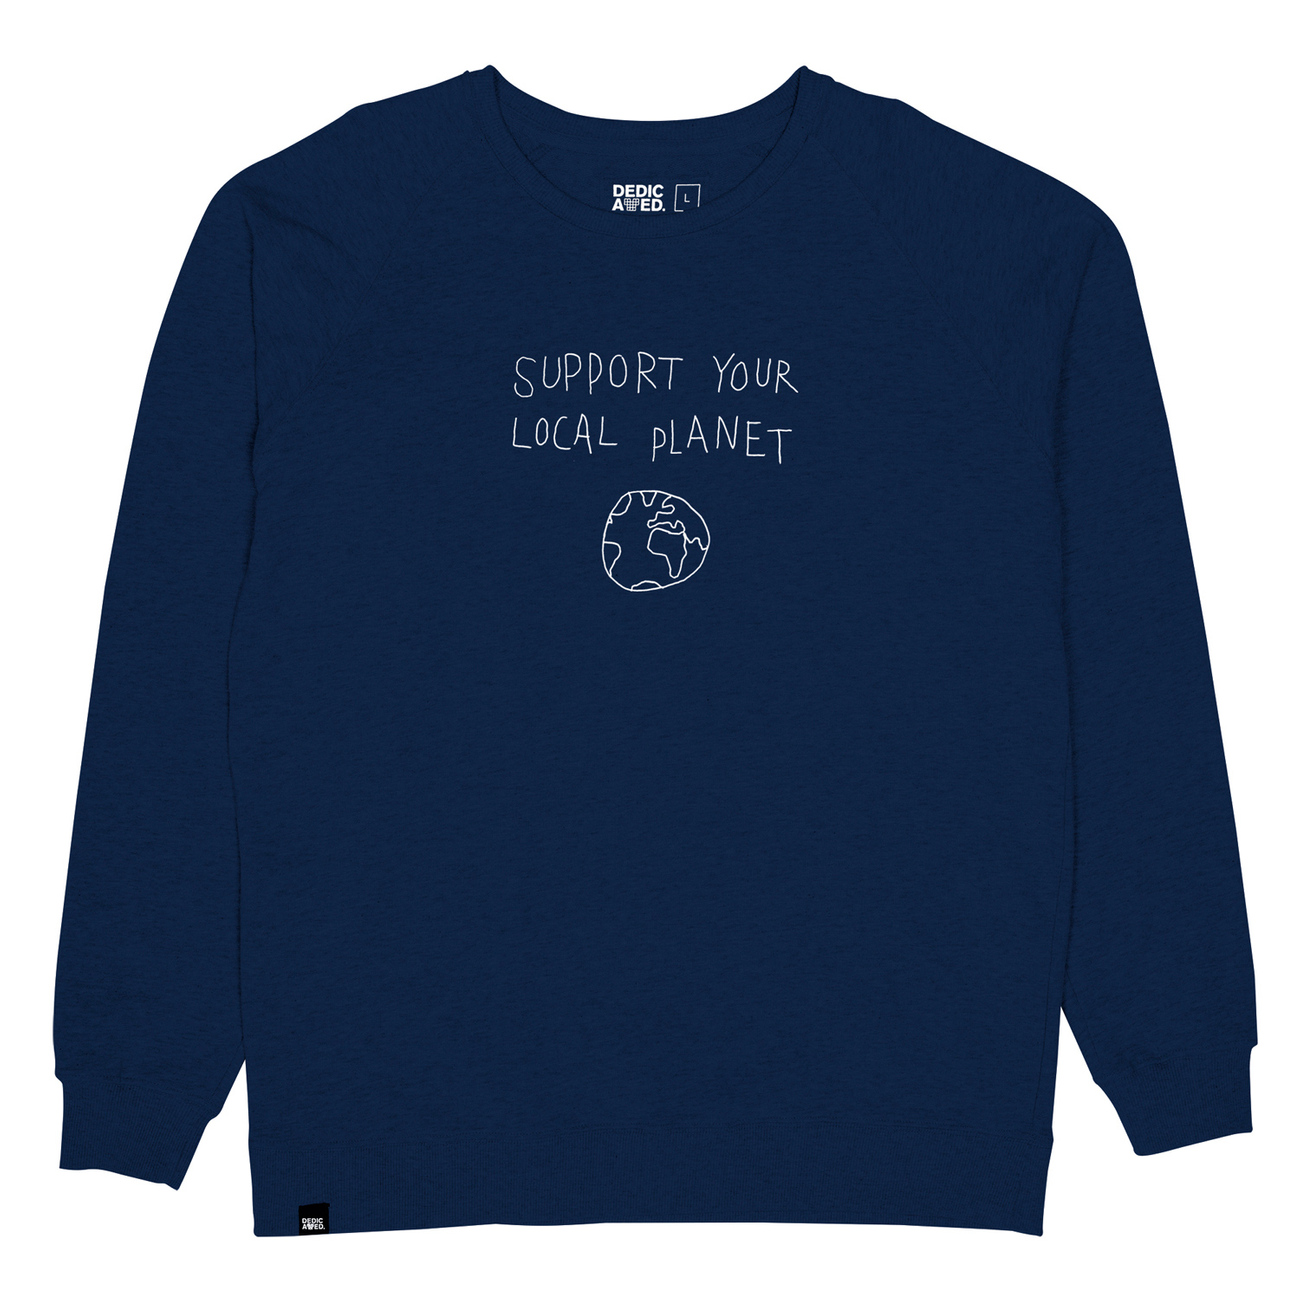 Malmoe Sweatshirt Local Planet